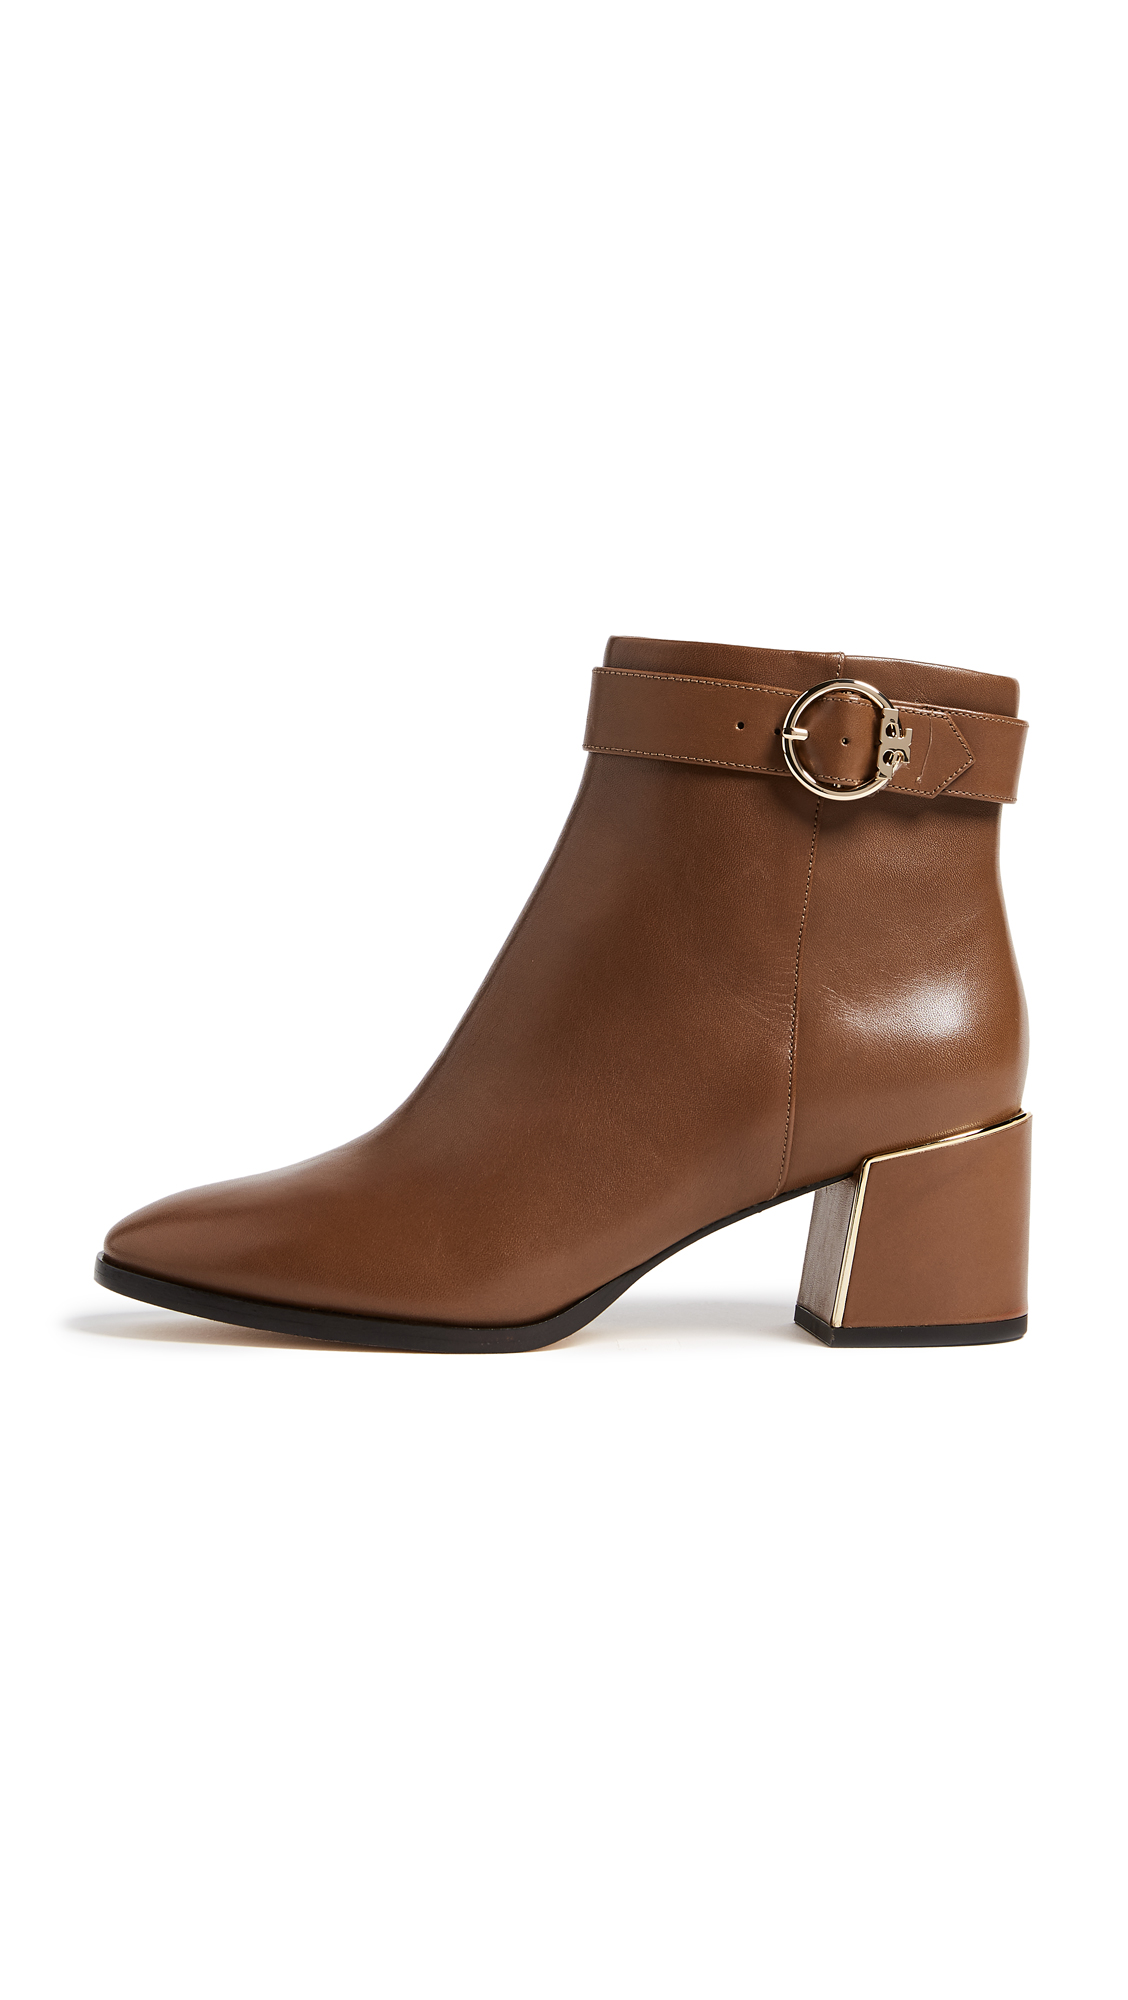 Tory Burch Sofia 60mm Dress Booties - Festival Brown